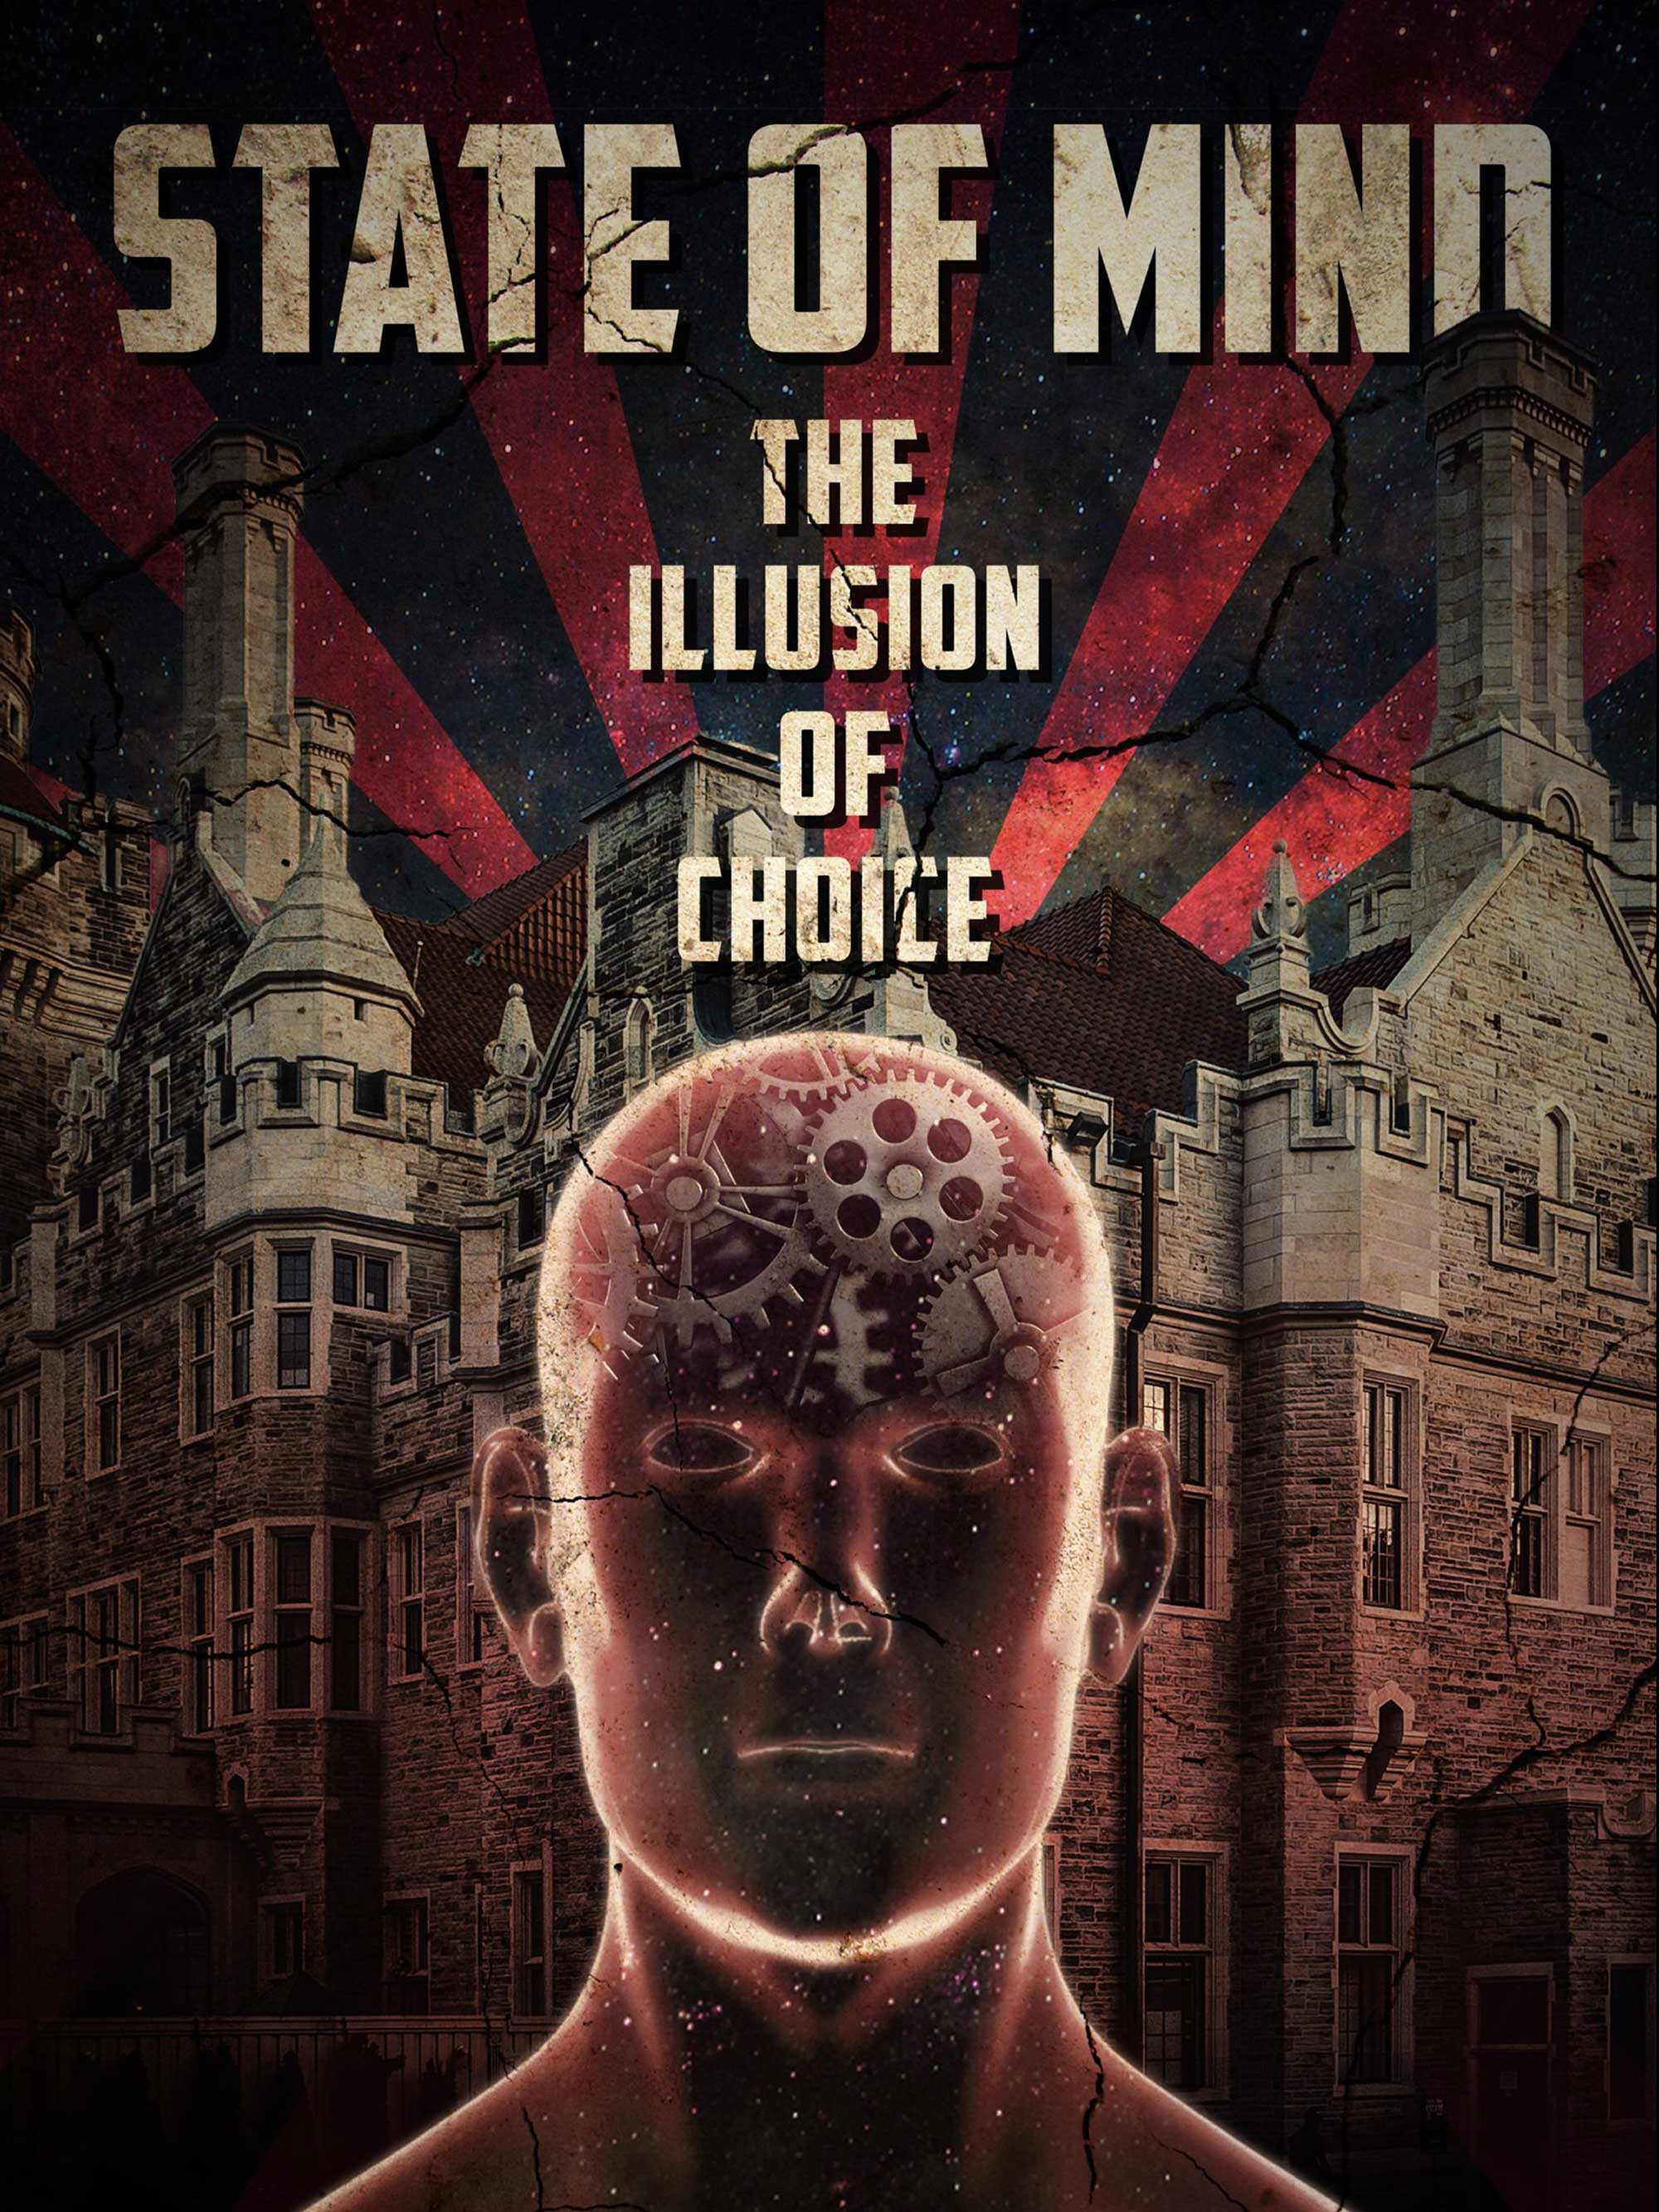 STATE OF MIND – THE ILLUSION OF CHOICE